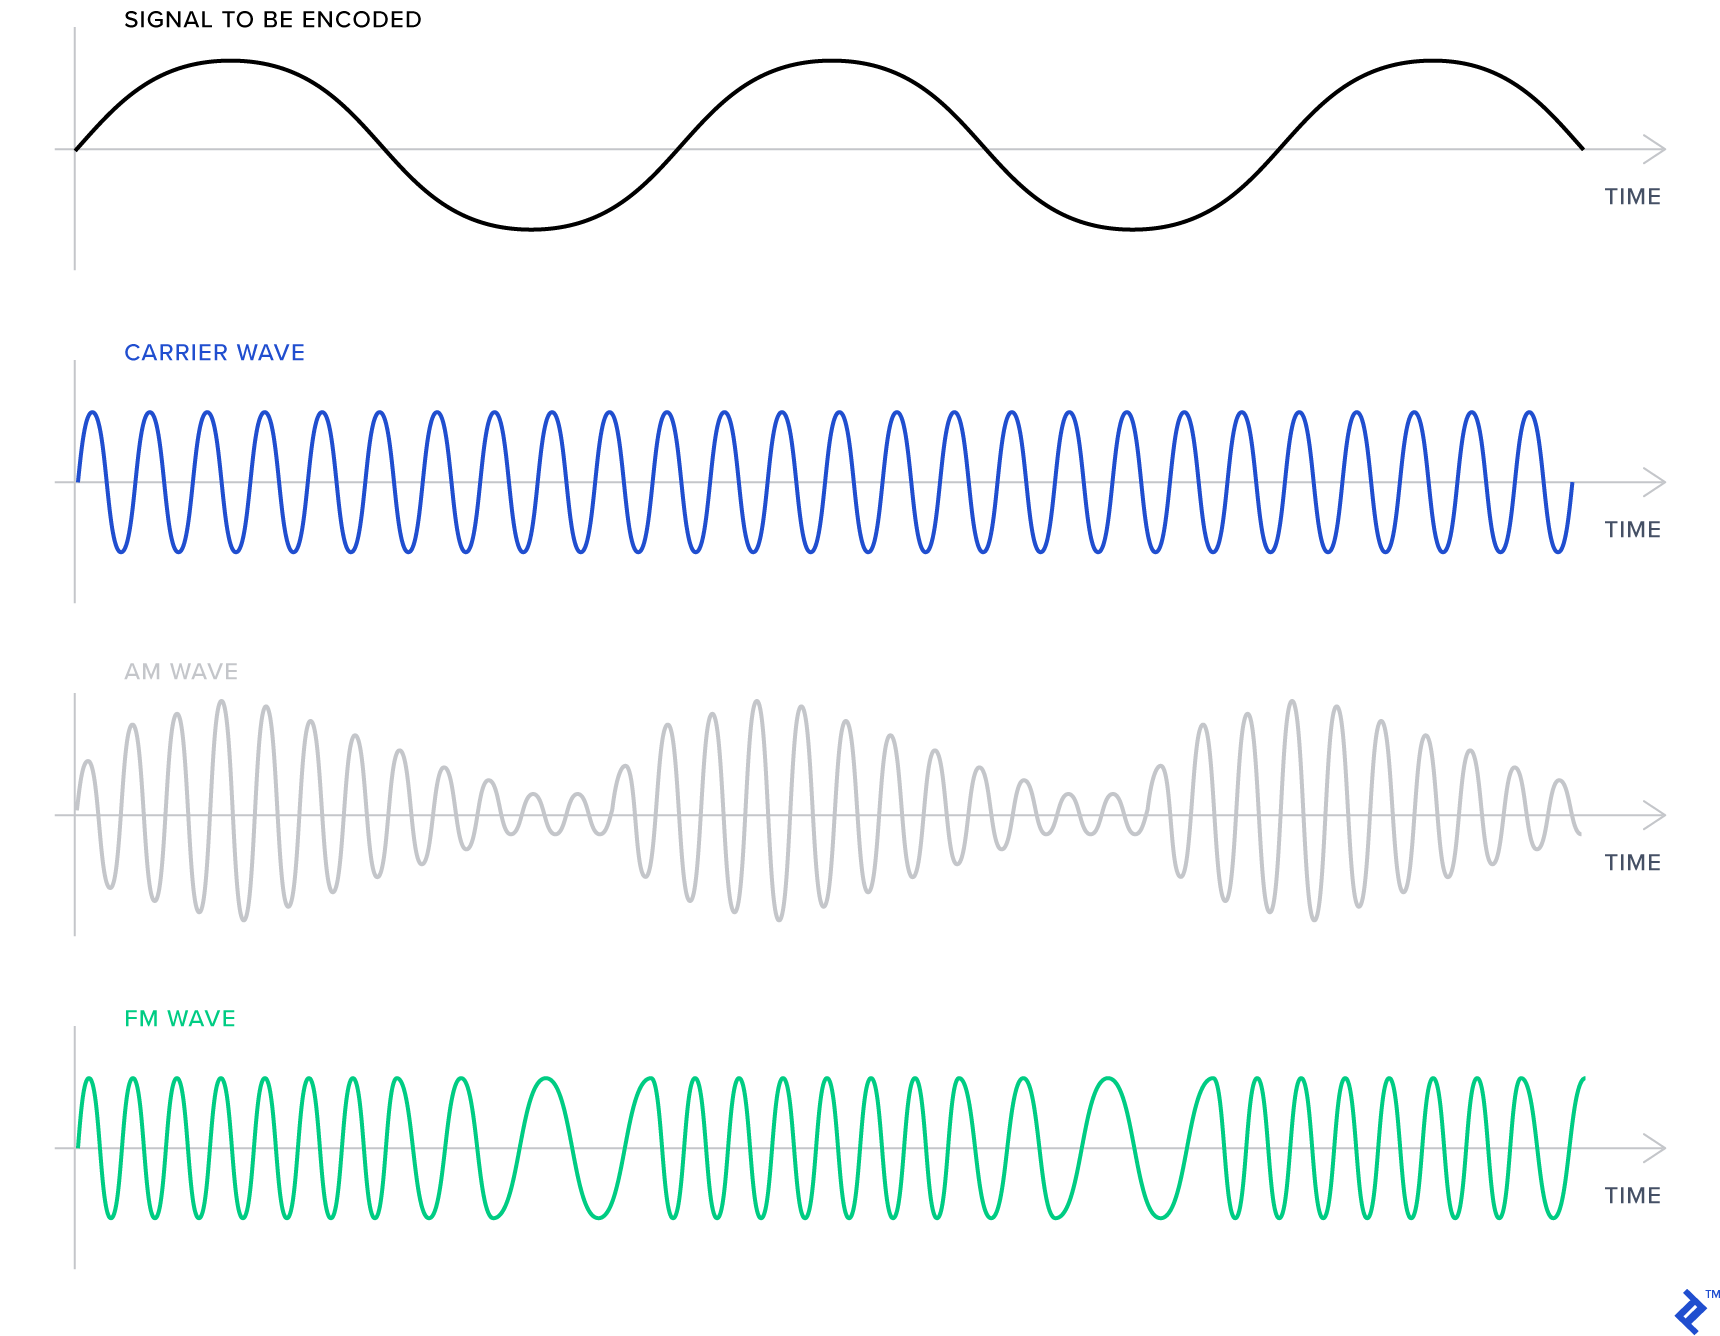 Information encoded in a carrier wave using amplitude and frequency modulation techniques